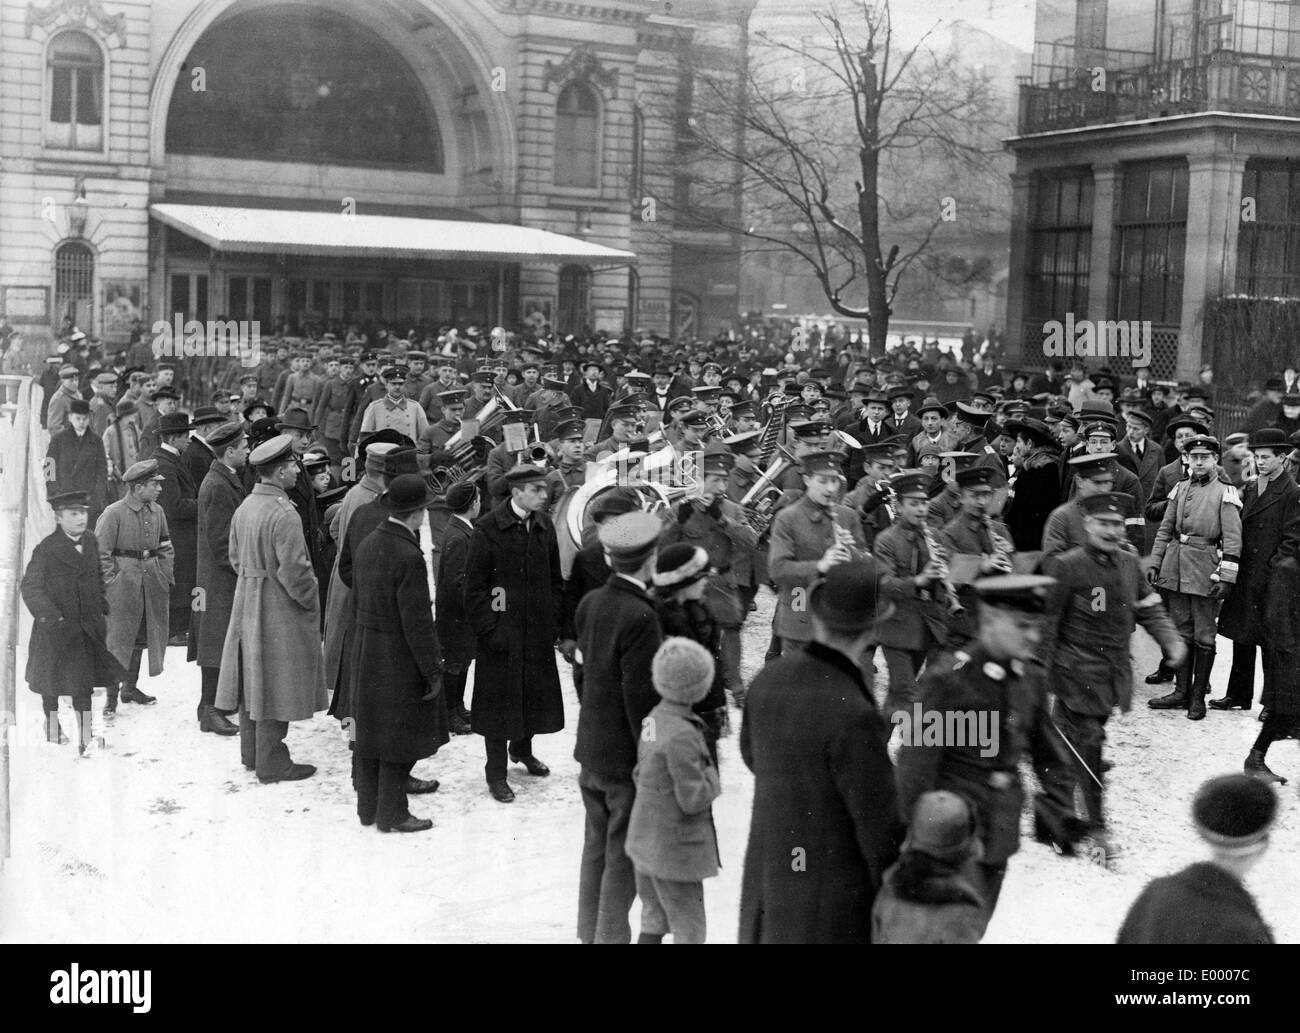 Marching band of the youth companies, 1917 Stock Photo